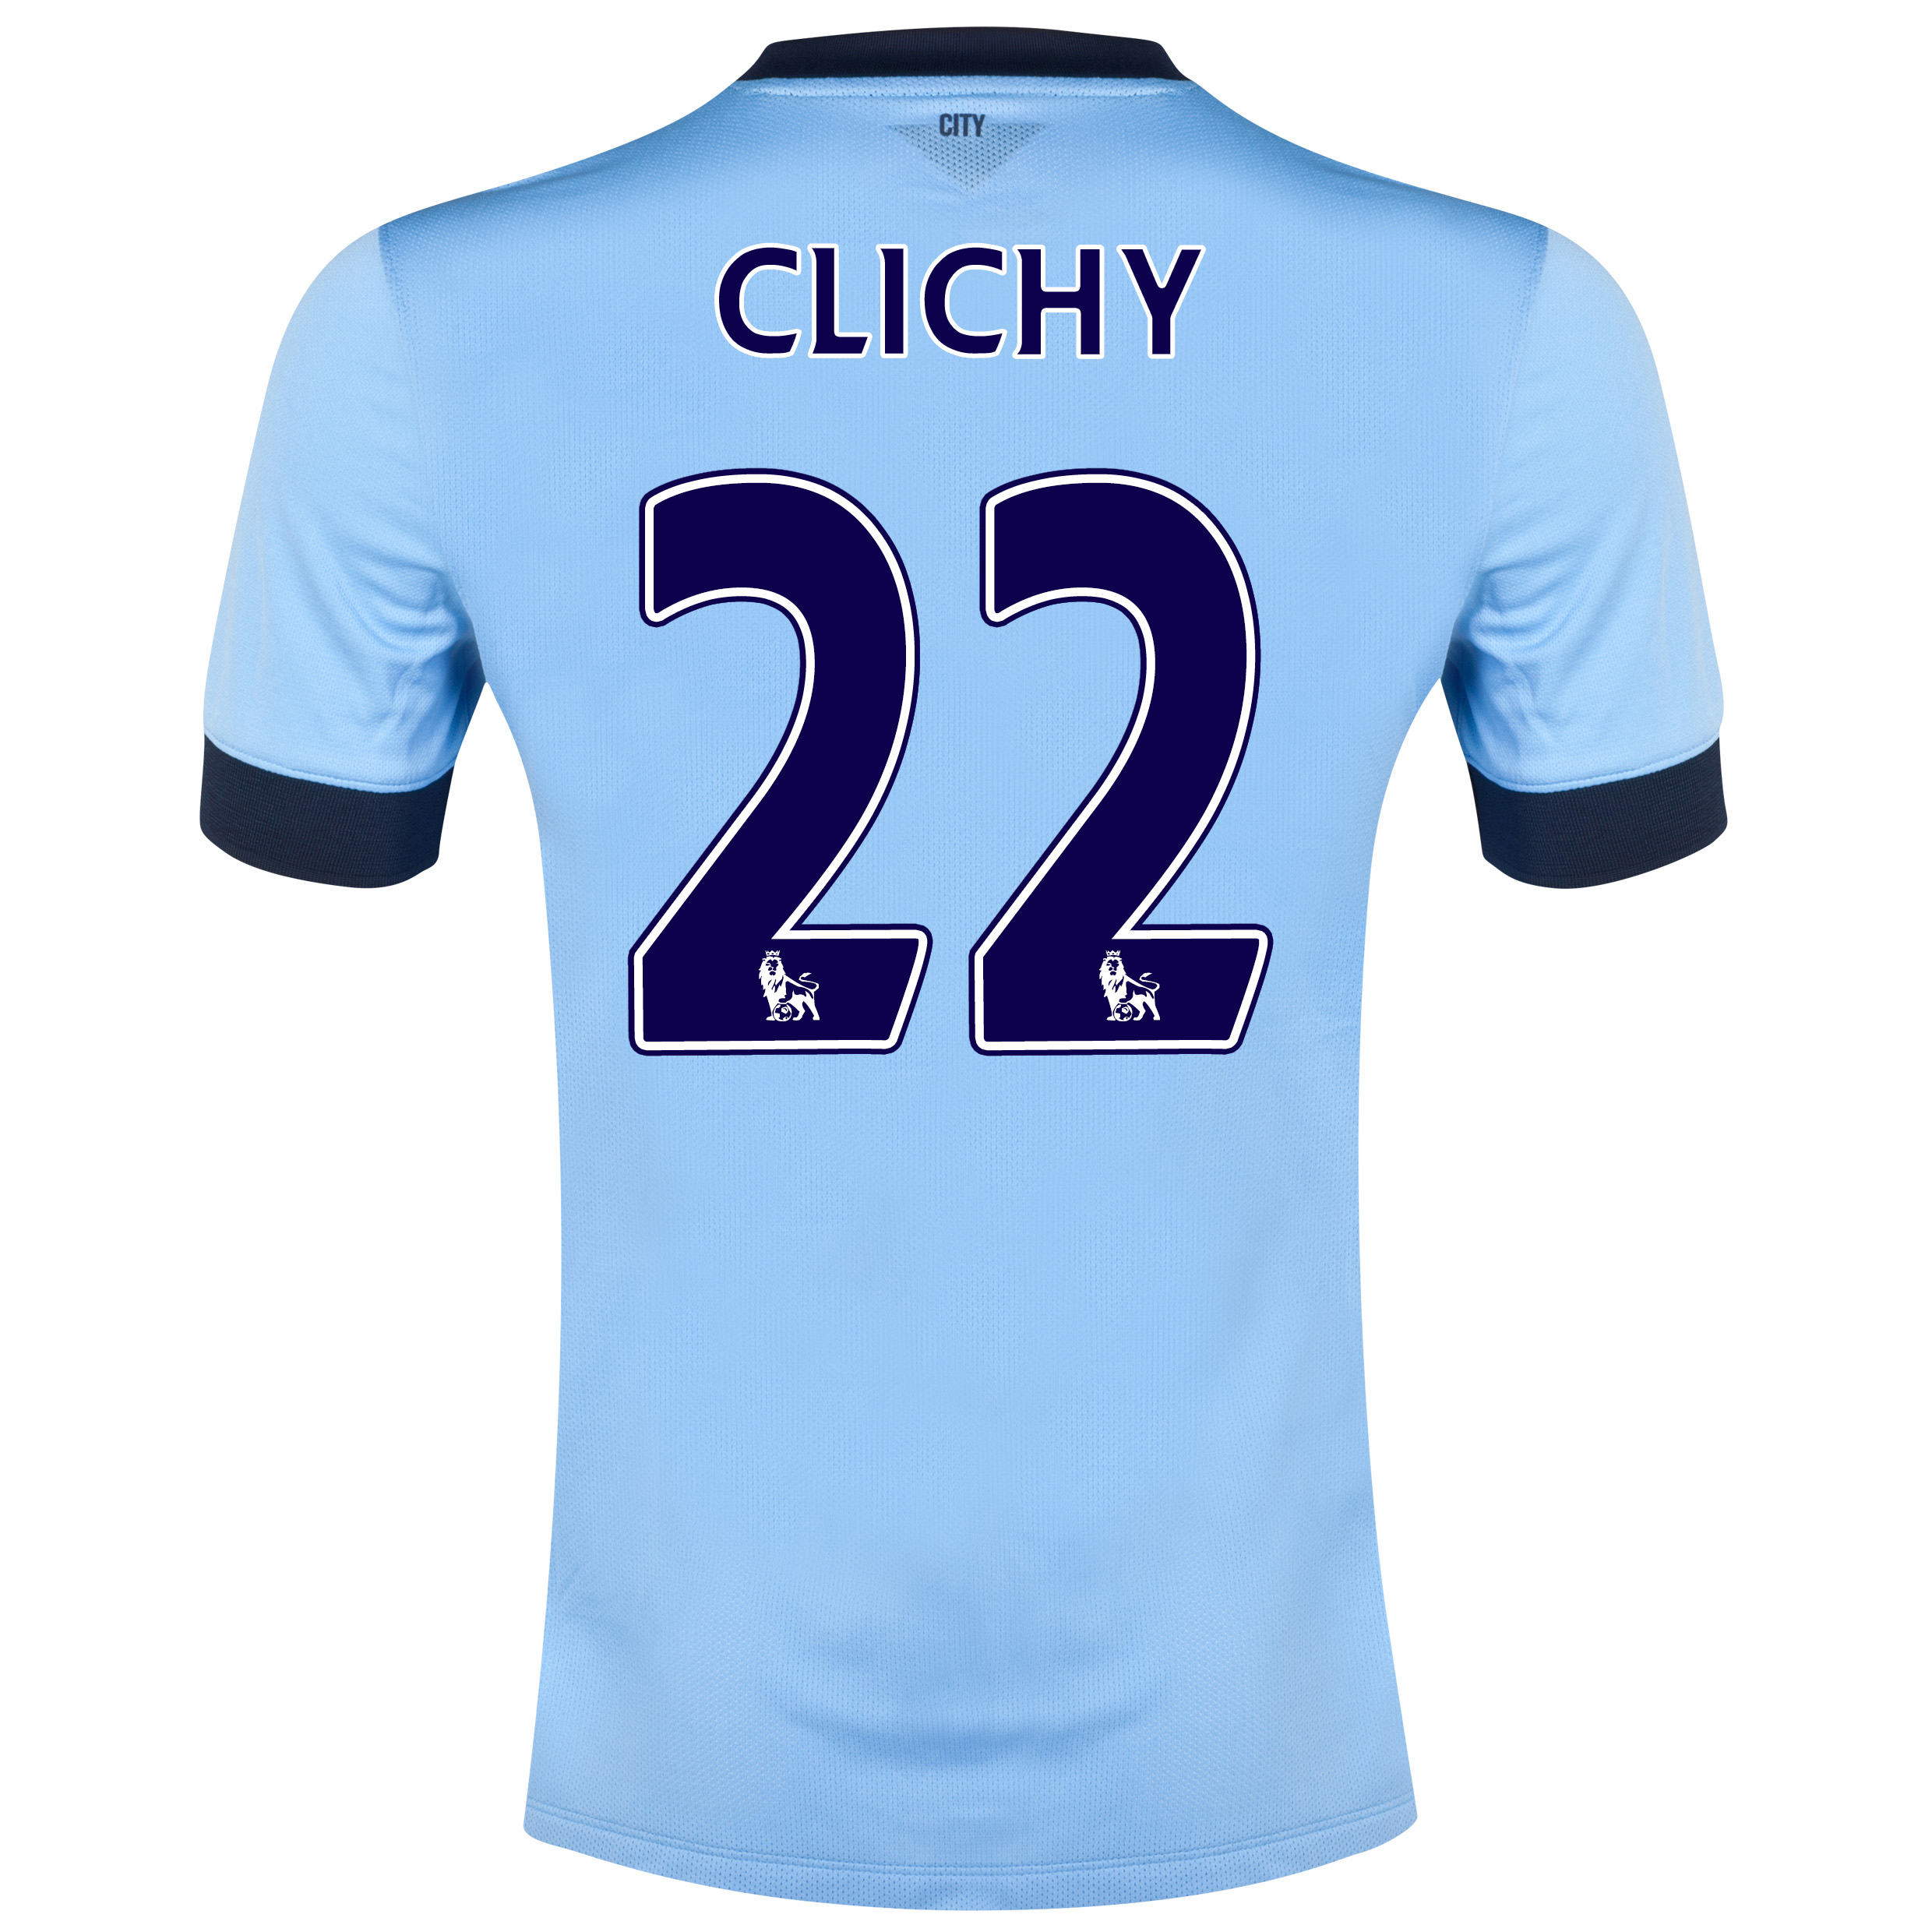 Manchester City Home Shirt 2014/15 - Kids Sky Blue with Clichy 22 printing